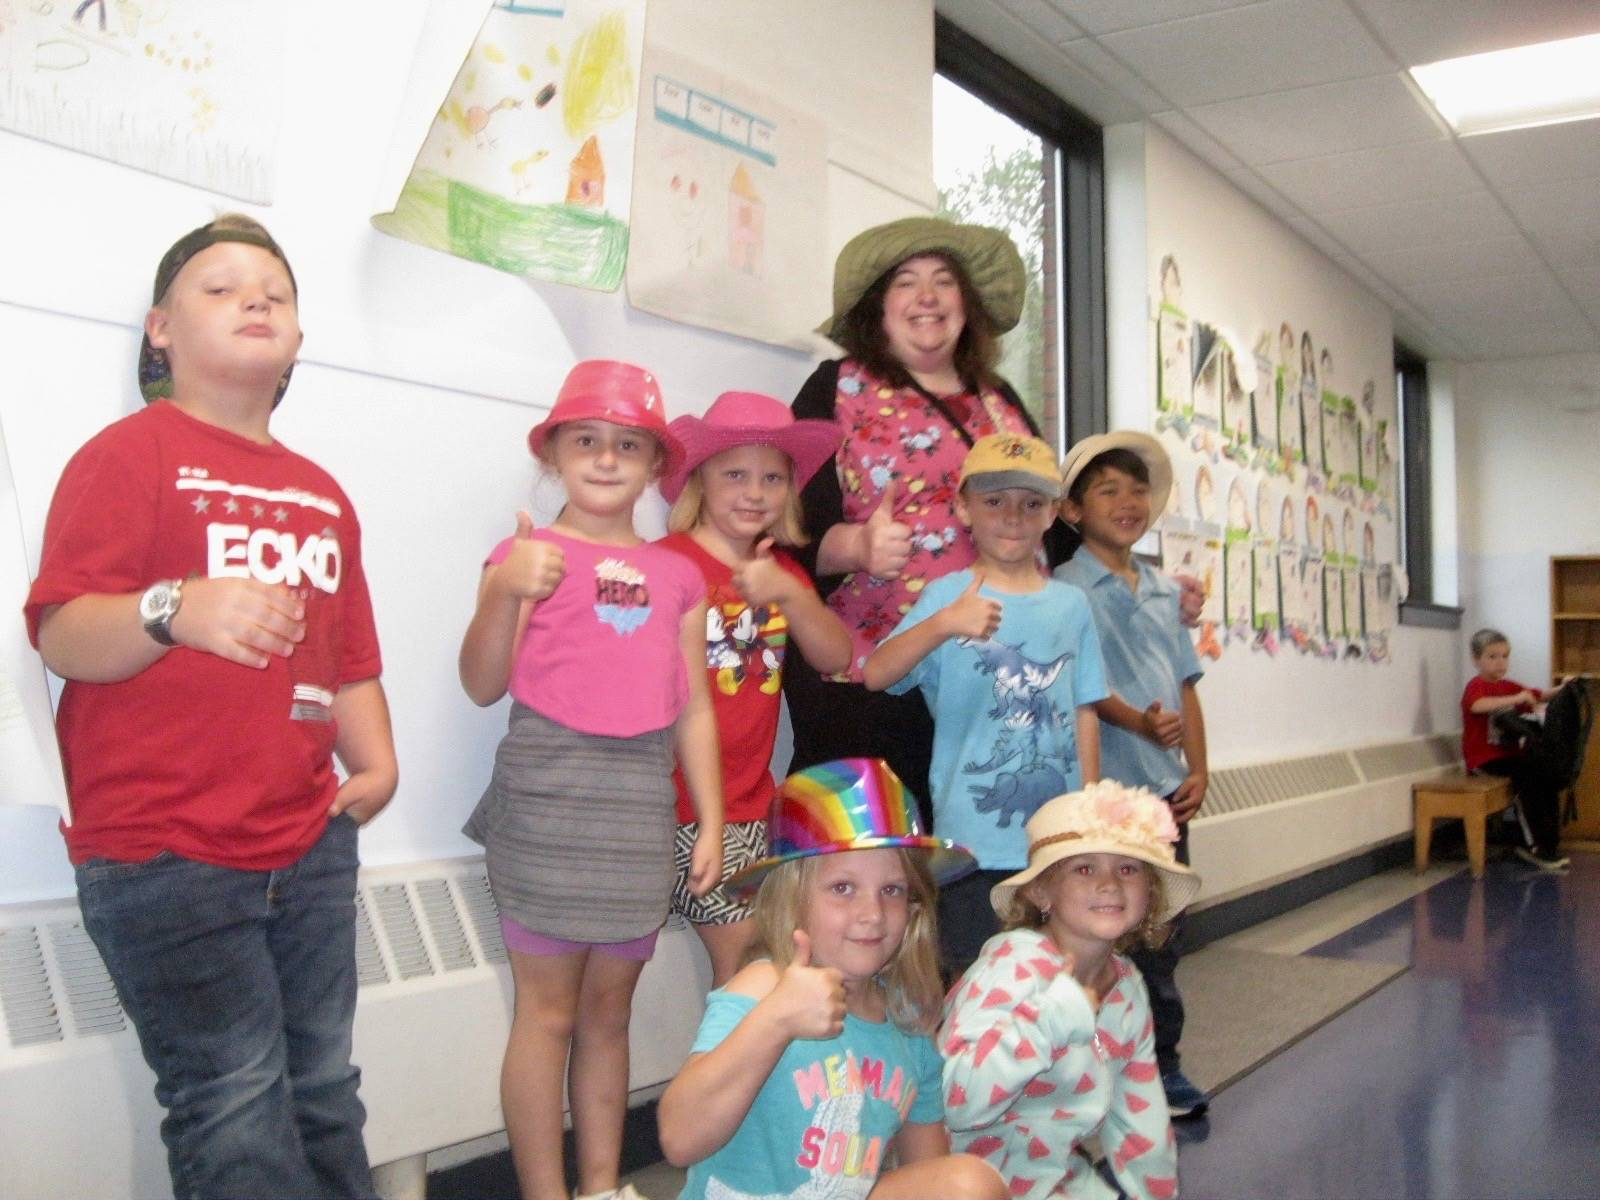 Several students and a staff member with cool hats.